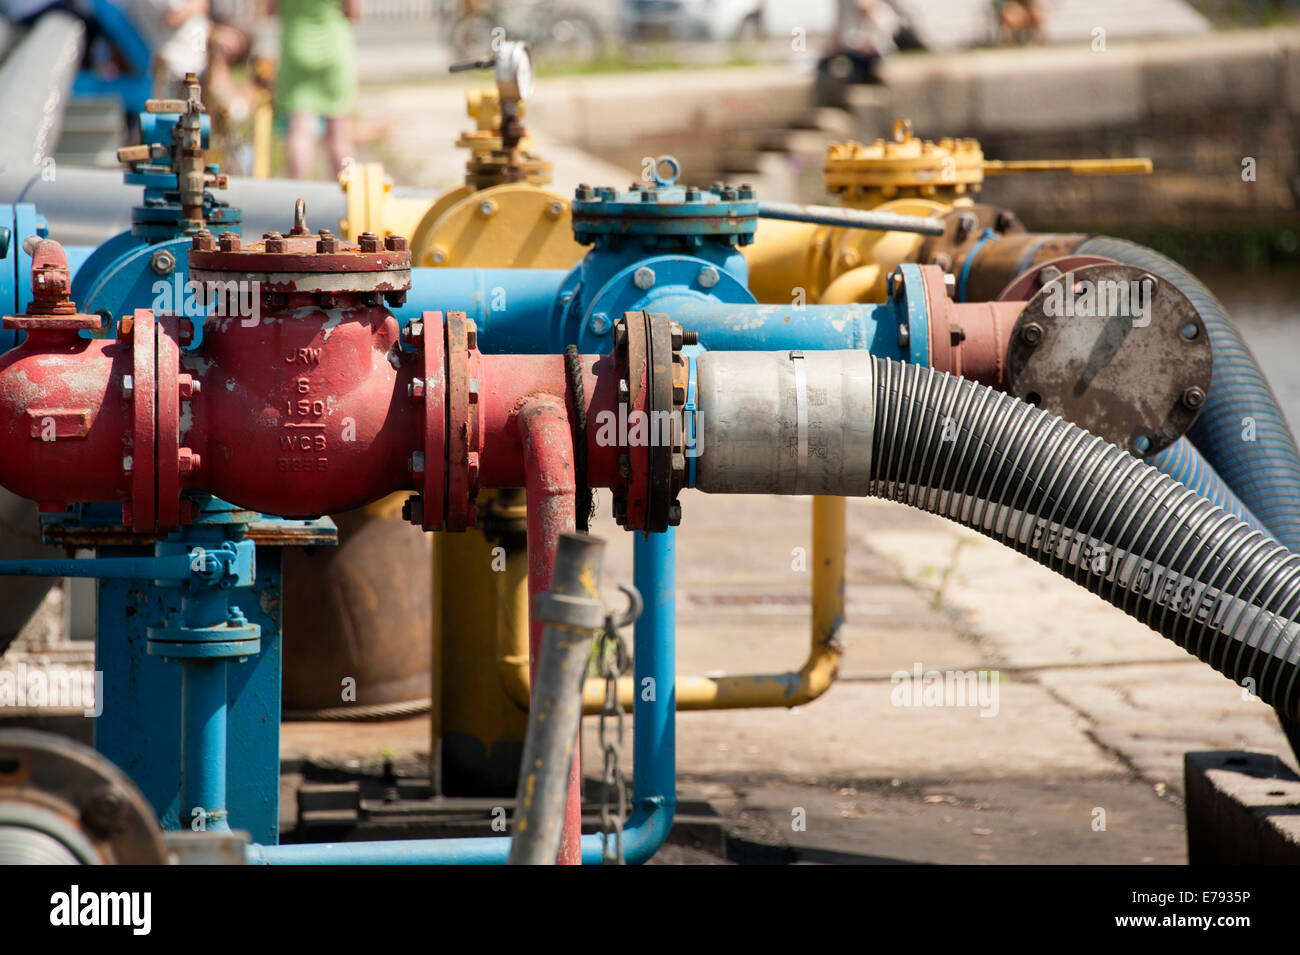 Ship Refueling Fuel Pipeline Fill Up Engine Valve - Stock Image